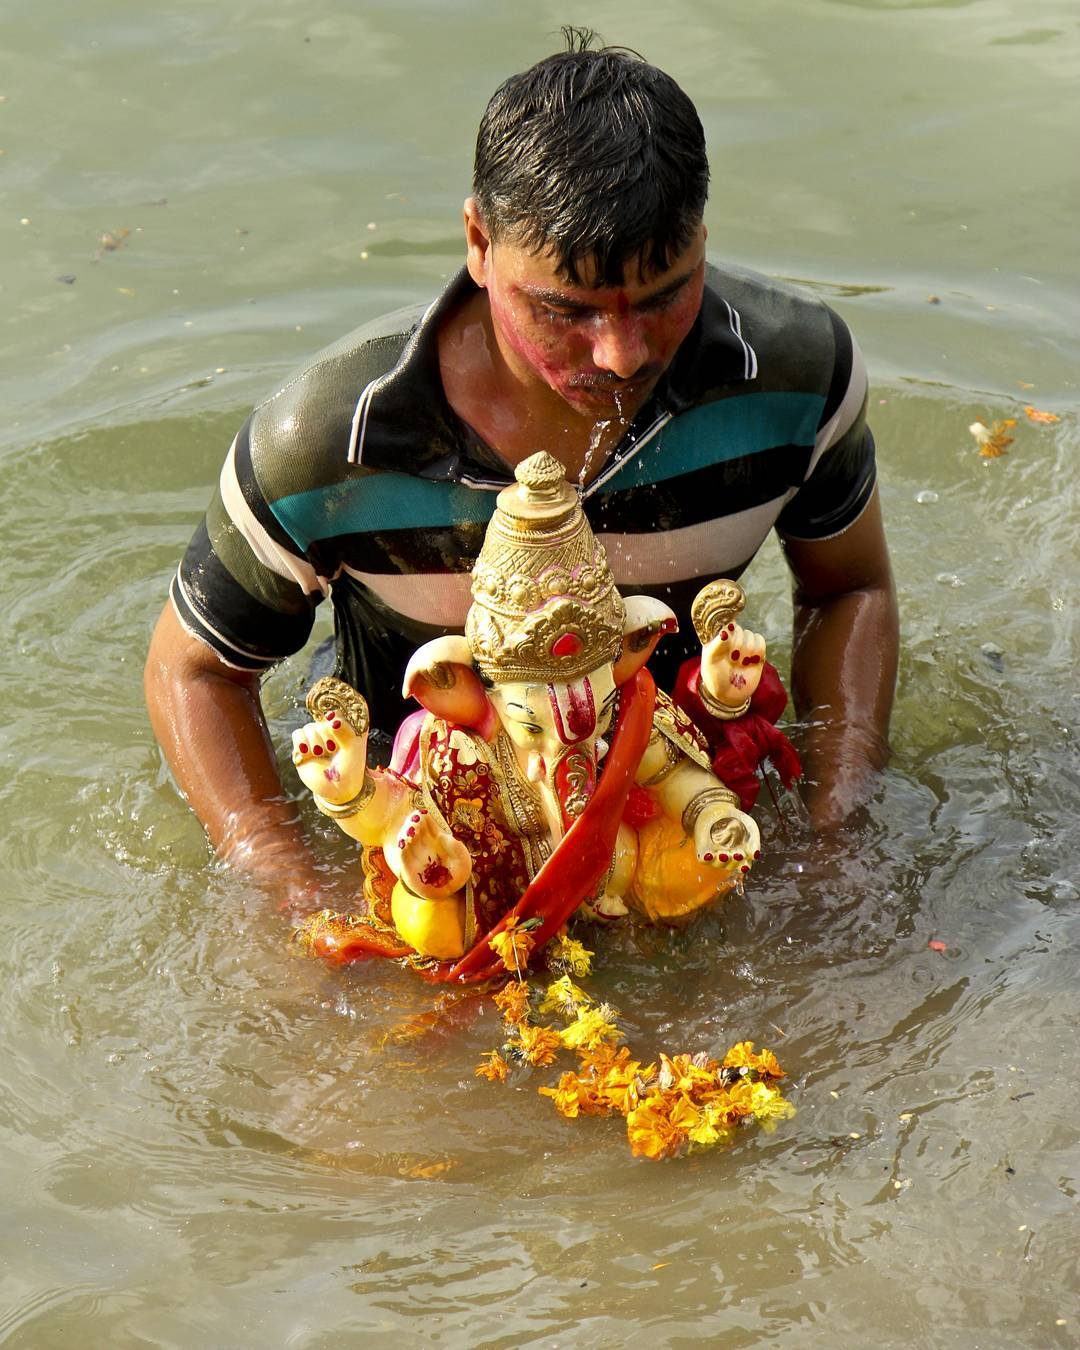 #ganeshvisarjan _3 its not easy to let you go. Goodbye Ganesha. तुझको फिर से जलवा दिखाना ही होगा  अगले बरस आना है आना ही होगा  #ahmedabad #ahmedabaddiaries #instagram_of_ahmedabad #ahmedabad_instagram #instagram_ahmedabad  #ganesh #_soi #clickindiaclick  #indiaclick #clickindia #photographers_of_india #indiaphotographer #ahmedabadphotography #streetofahmedabad #i_hobbygraphy #PhotoContest #myhallaphoto #india_click #streetphotographyindia #candid